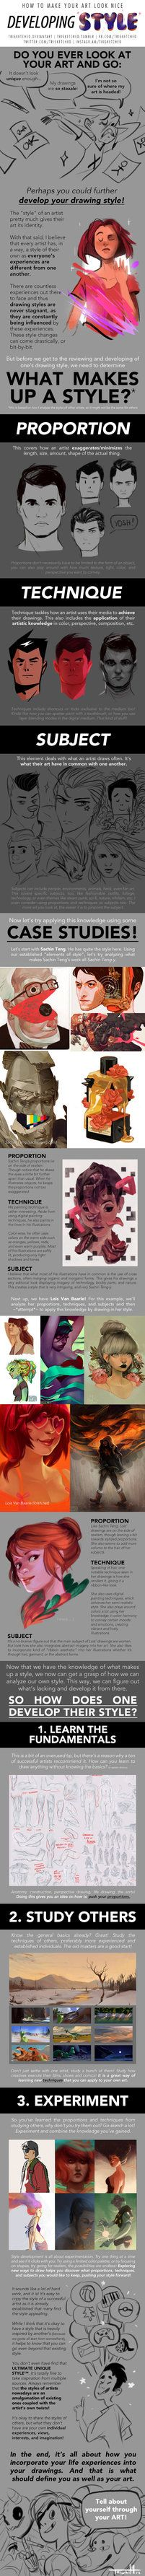 HOW TO MAKE YOUR ART LOOK NICE: Developing Style by trisketched.deviantart.com on @DeviantArt